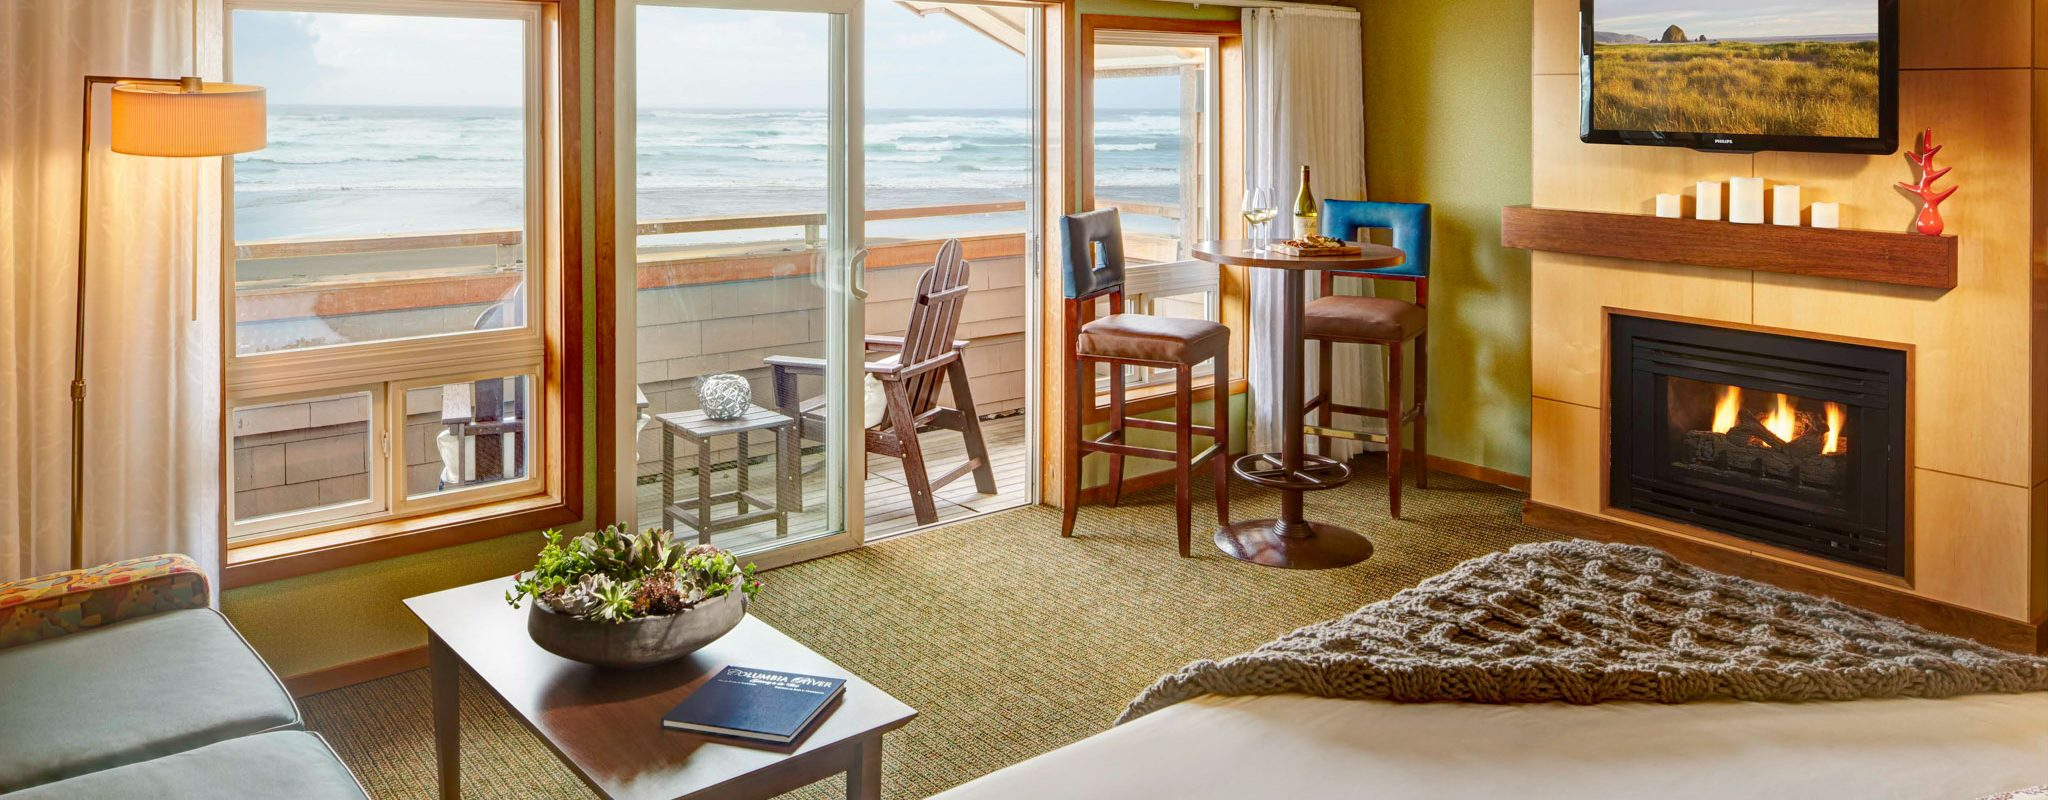 Cannon Beach Accommodations | Surfsand Resort Guest Rooms